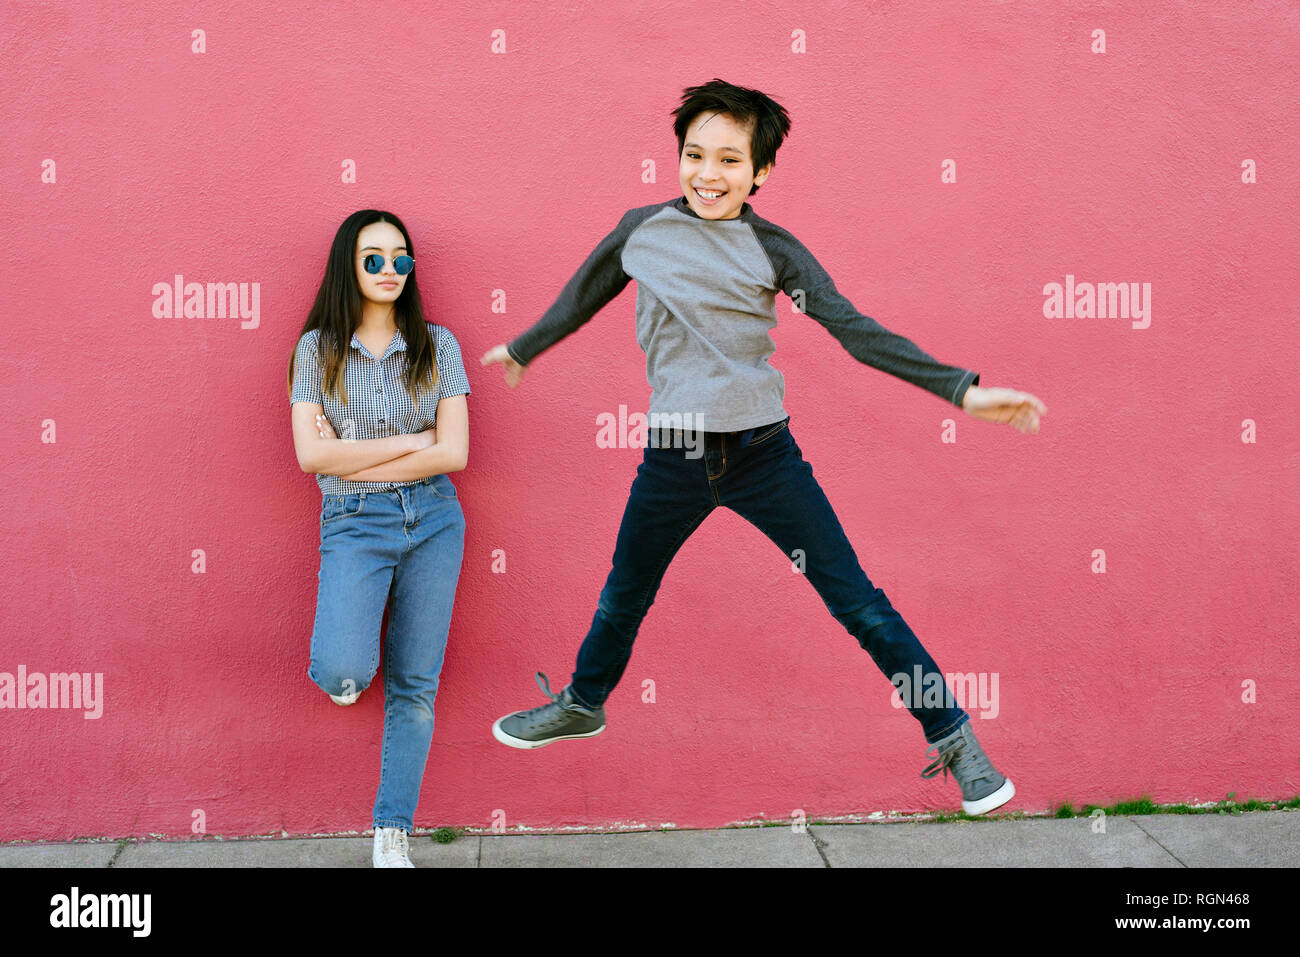 A teen sister looks onto her younger brother as he leaps into the air.  She is stoic and he is happy - Stock Image